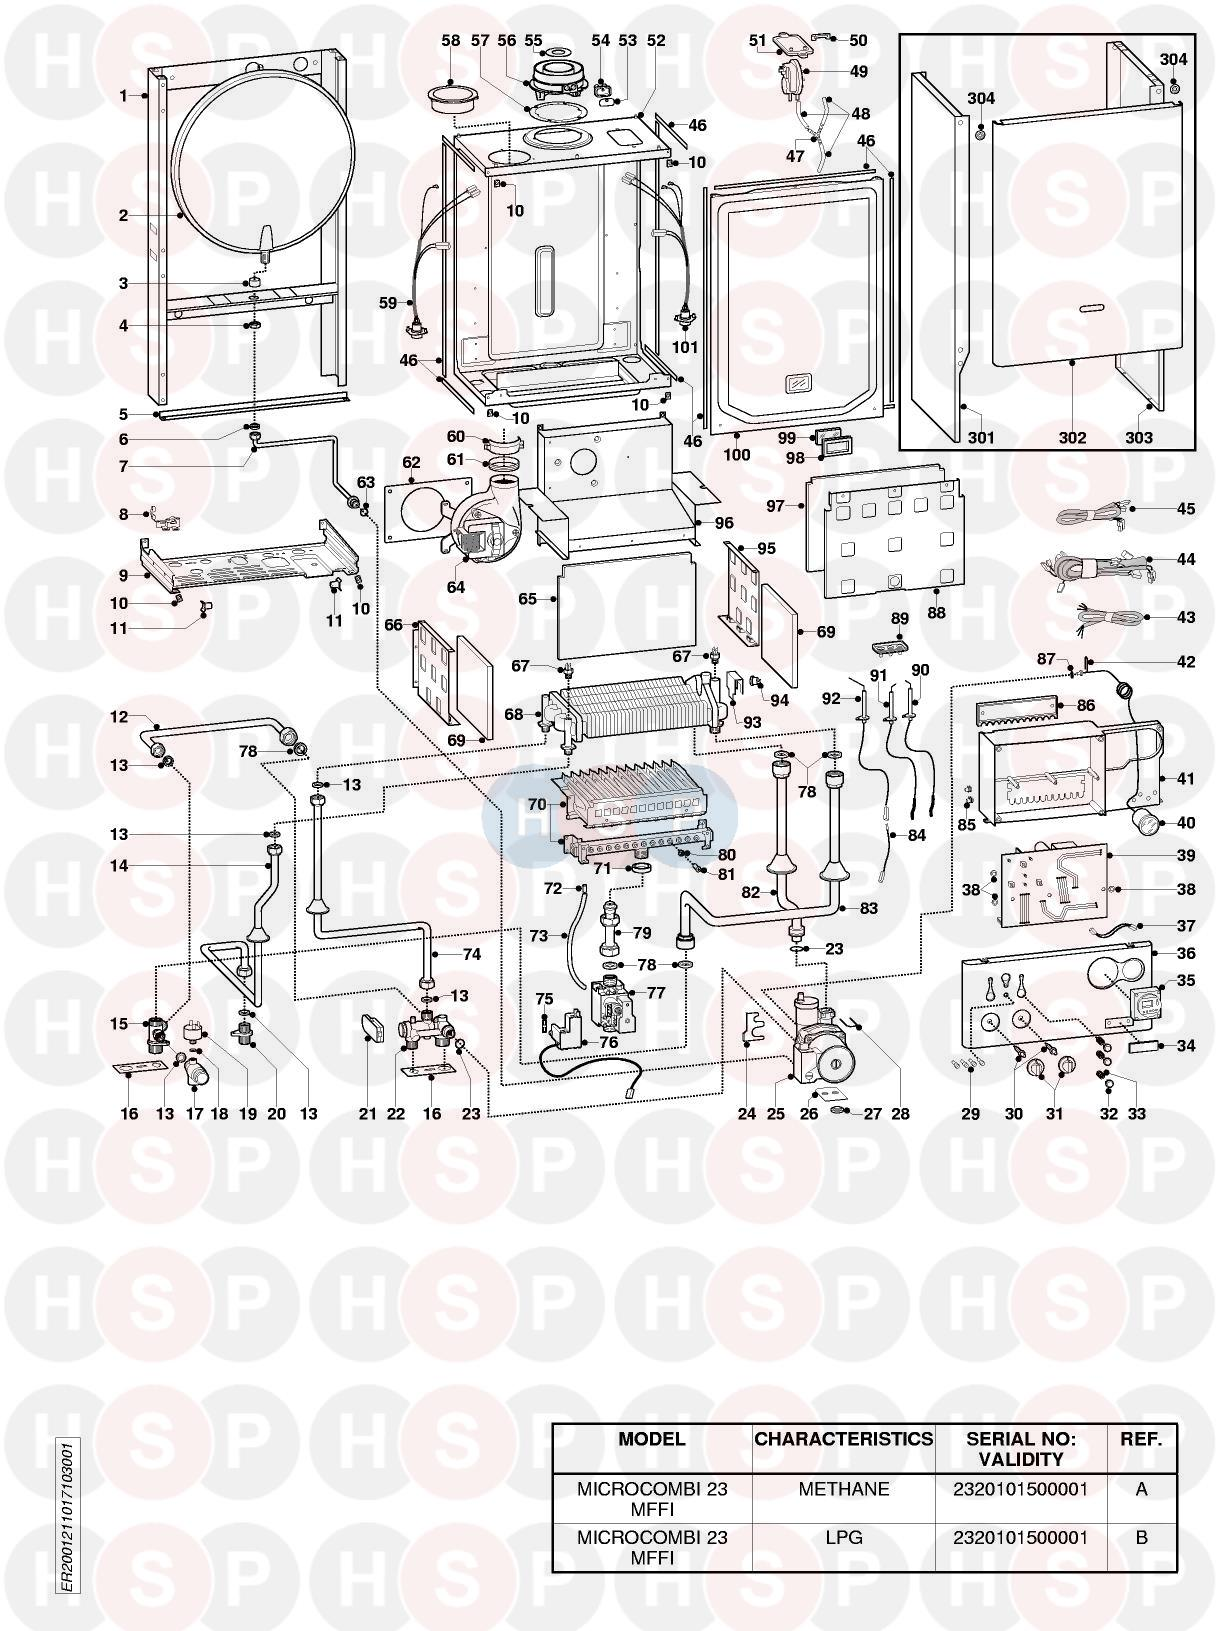 Ariston MICROCOMBI 23 MFFI EDITION3 Appliance Diagram